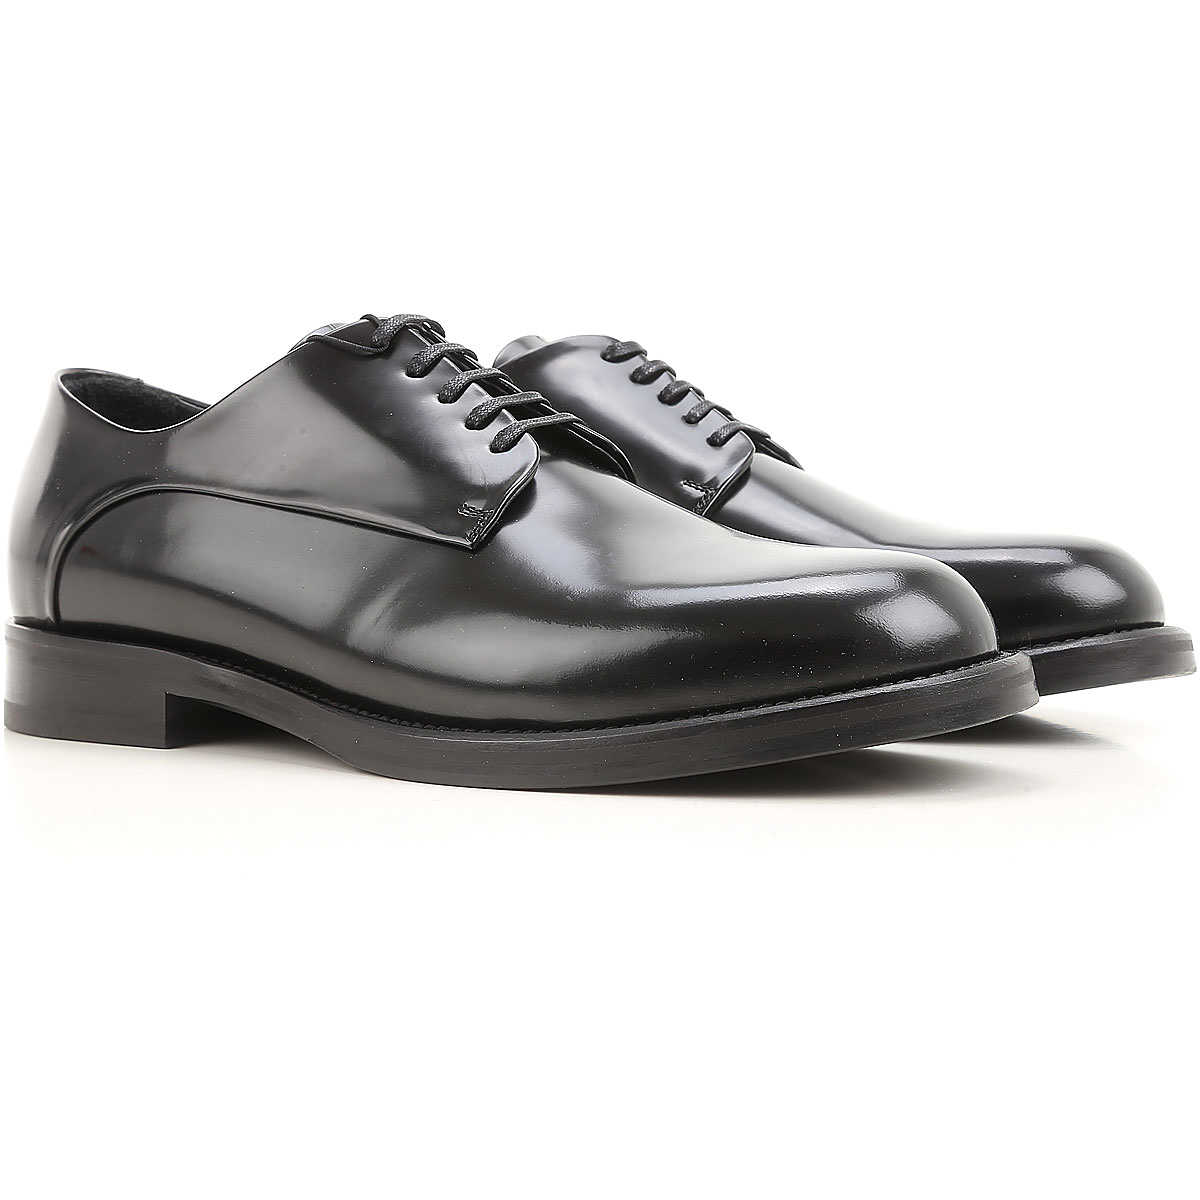 Emporio Armani Lace Up Shoes for Men Oxfords Derbies and Brogues On Sale in Outlet - GOOFASH